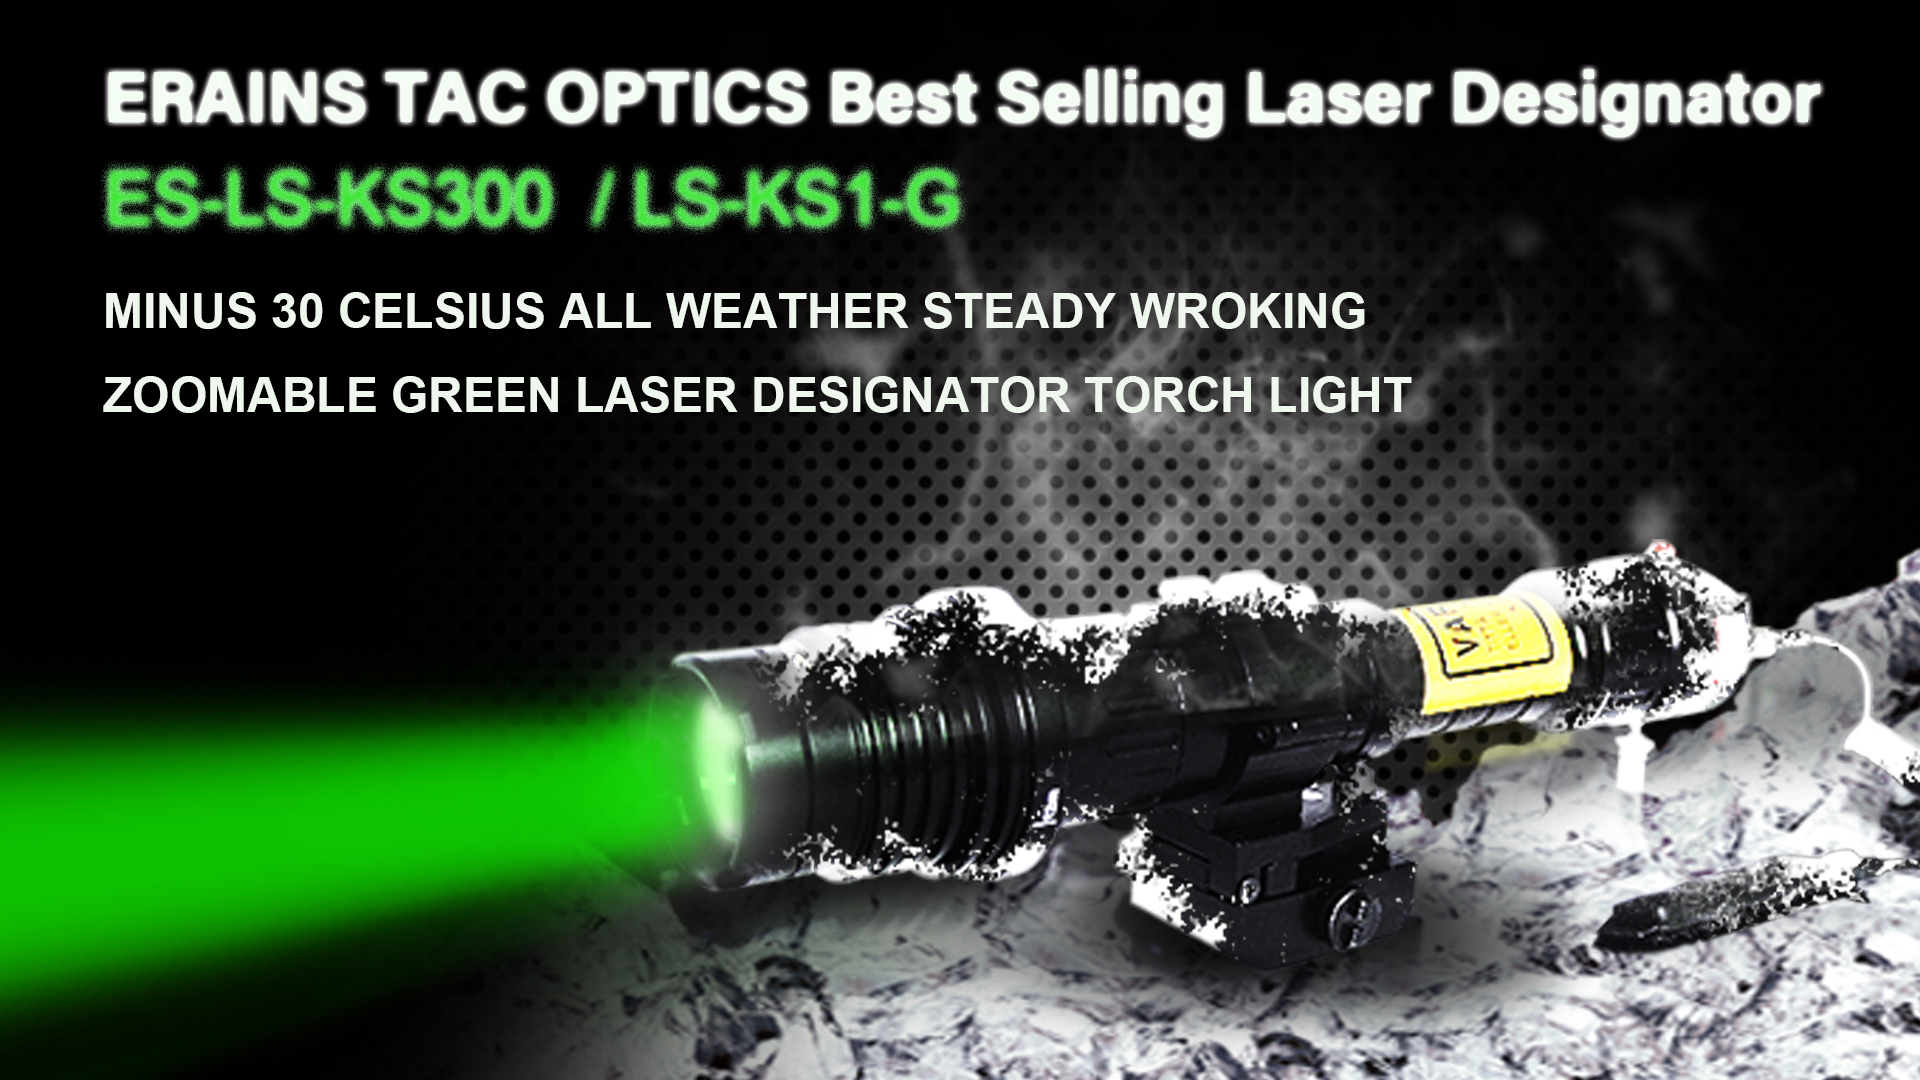 The perfect long distance subzero 100mw green laser designator with rifle mount accessories and rechargeable batteries.